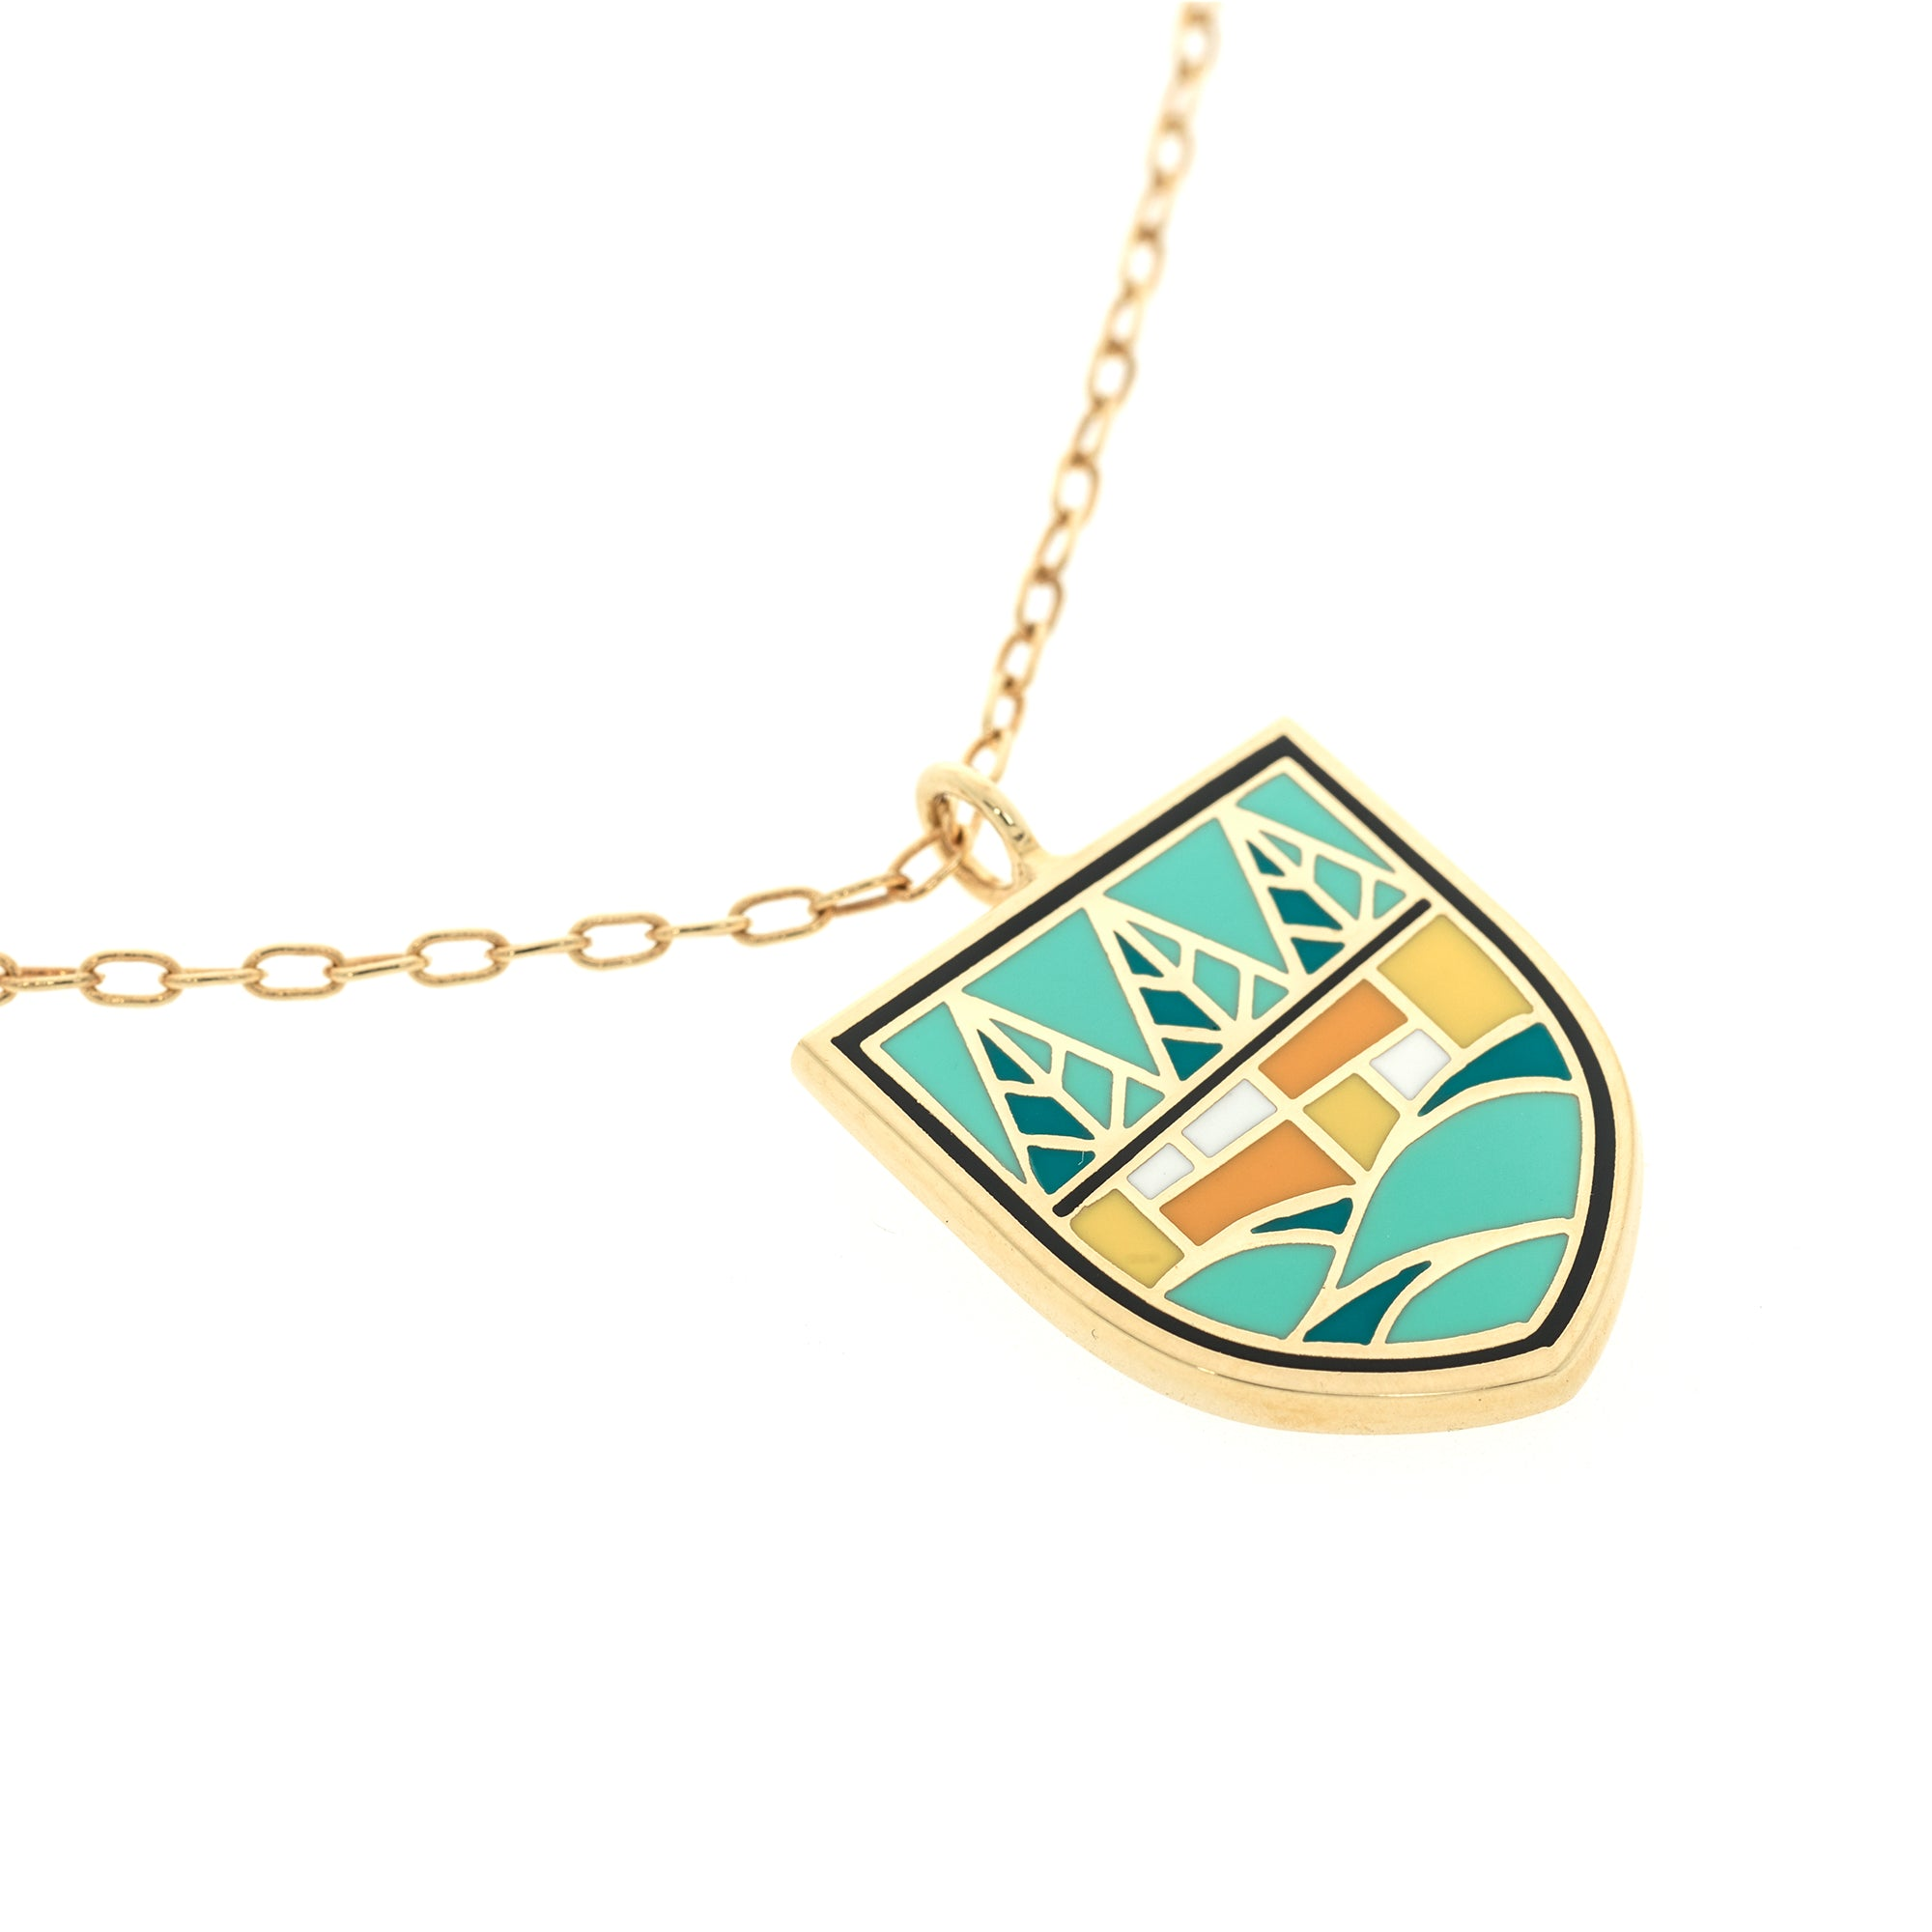 Camp Chain Necklace in Polished Gold